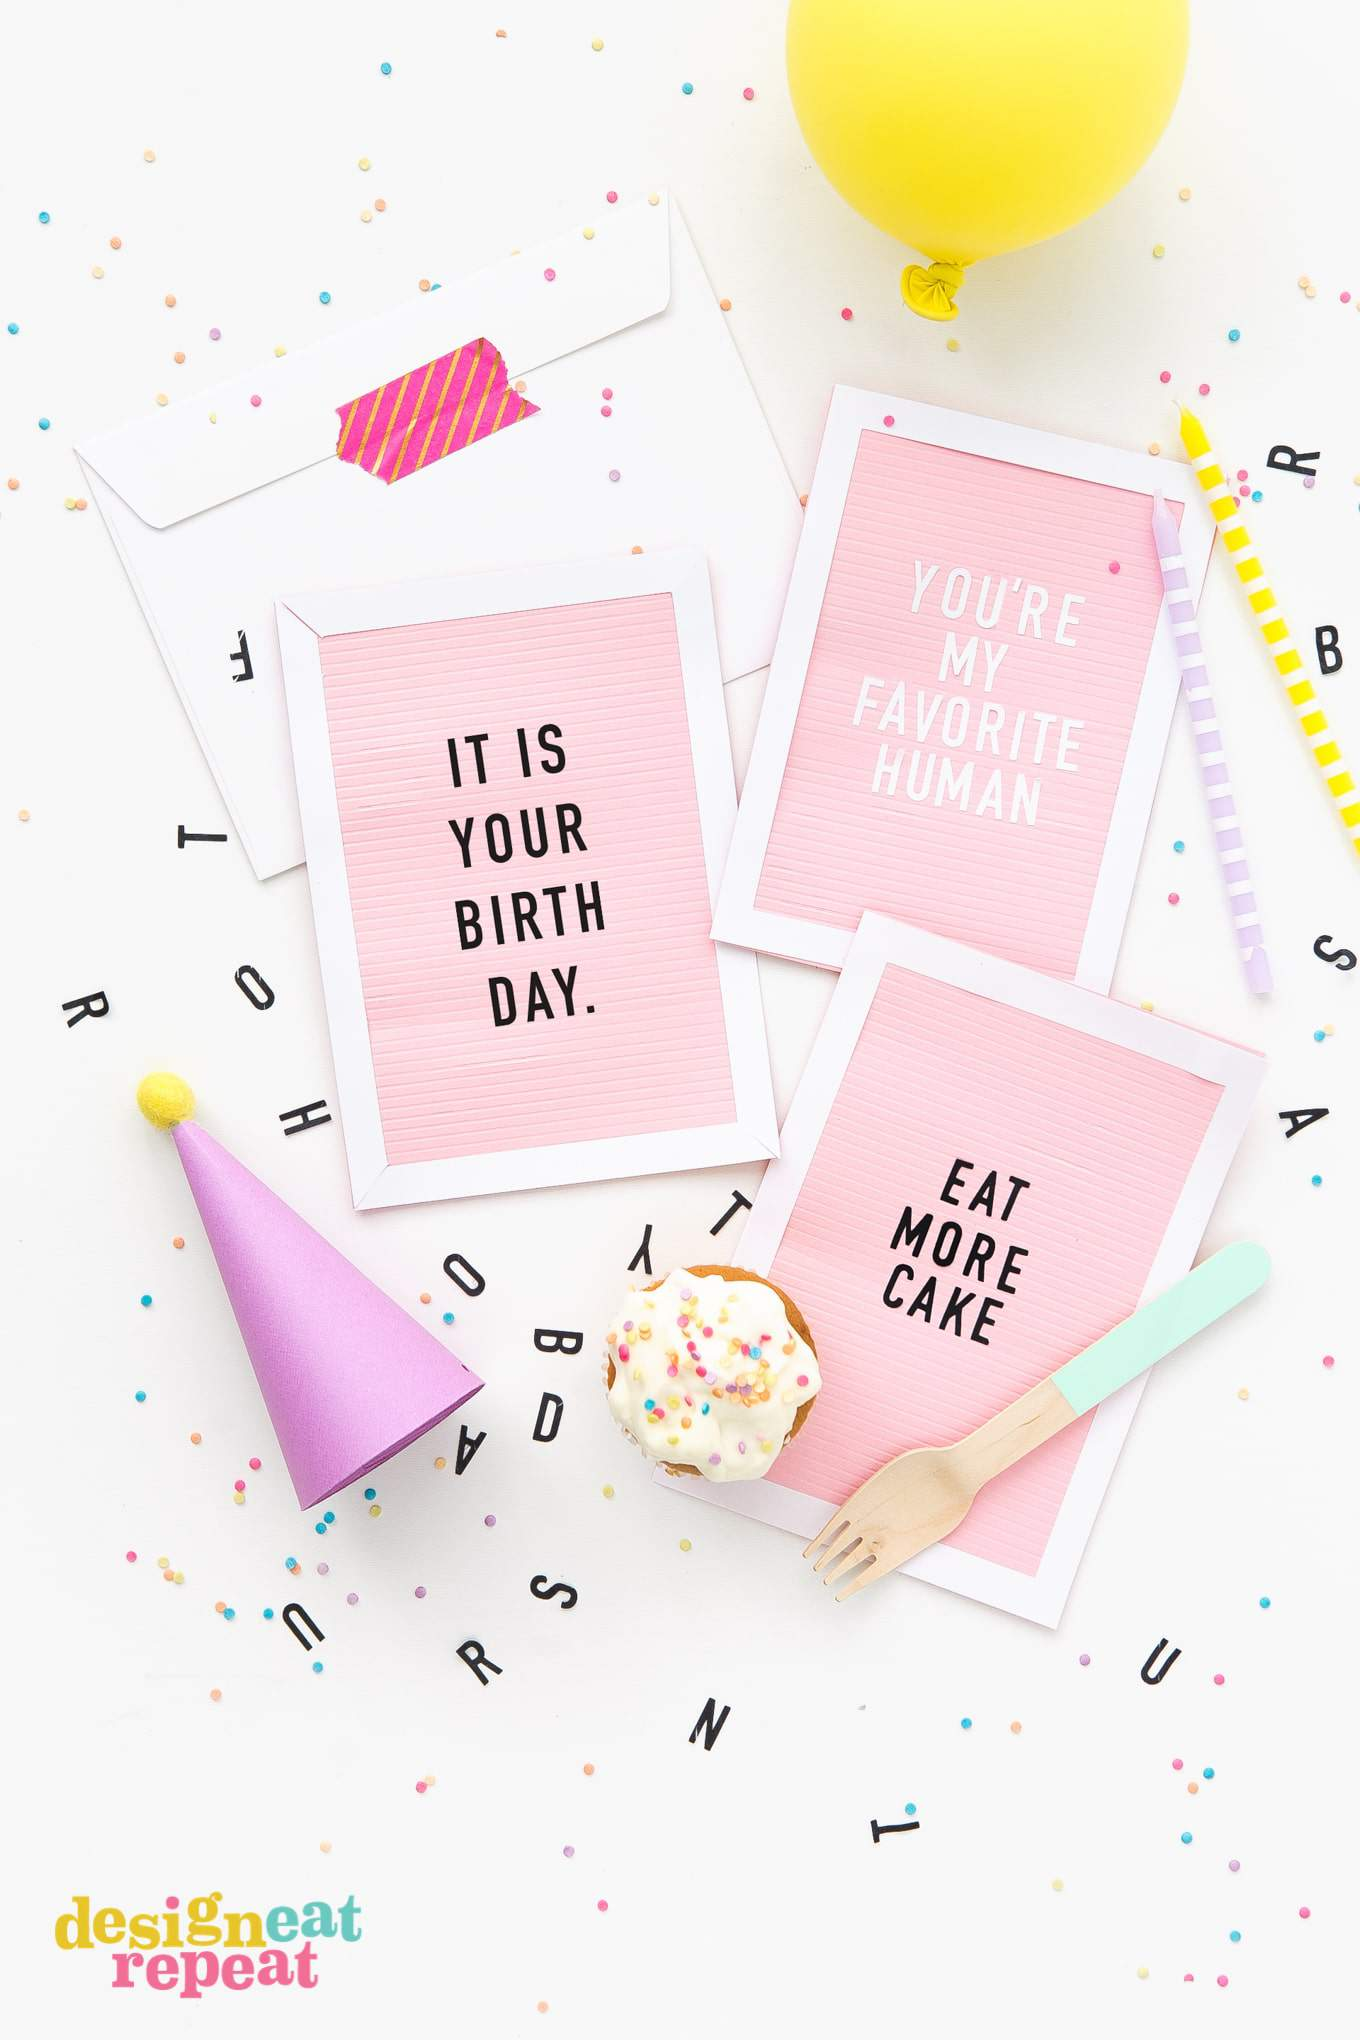 Bring the letterboard trend to your craft room with these DIY Letterboard Birthday Cards! Customize with your own phrases and slip in an envelope for a fun & creative handmade birthday card! | www.DesignEatRepeat.com | #birthdaycard #printable